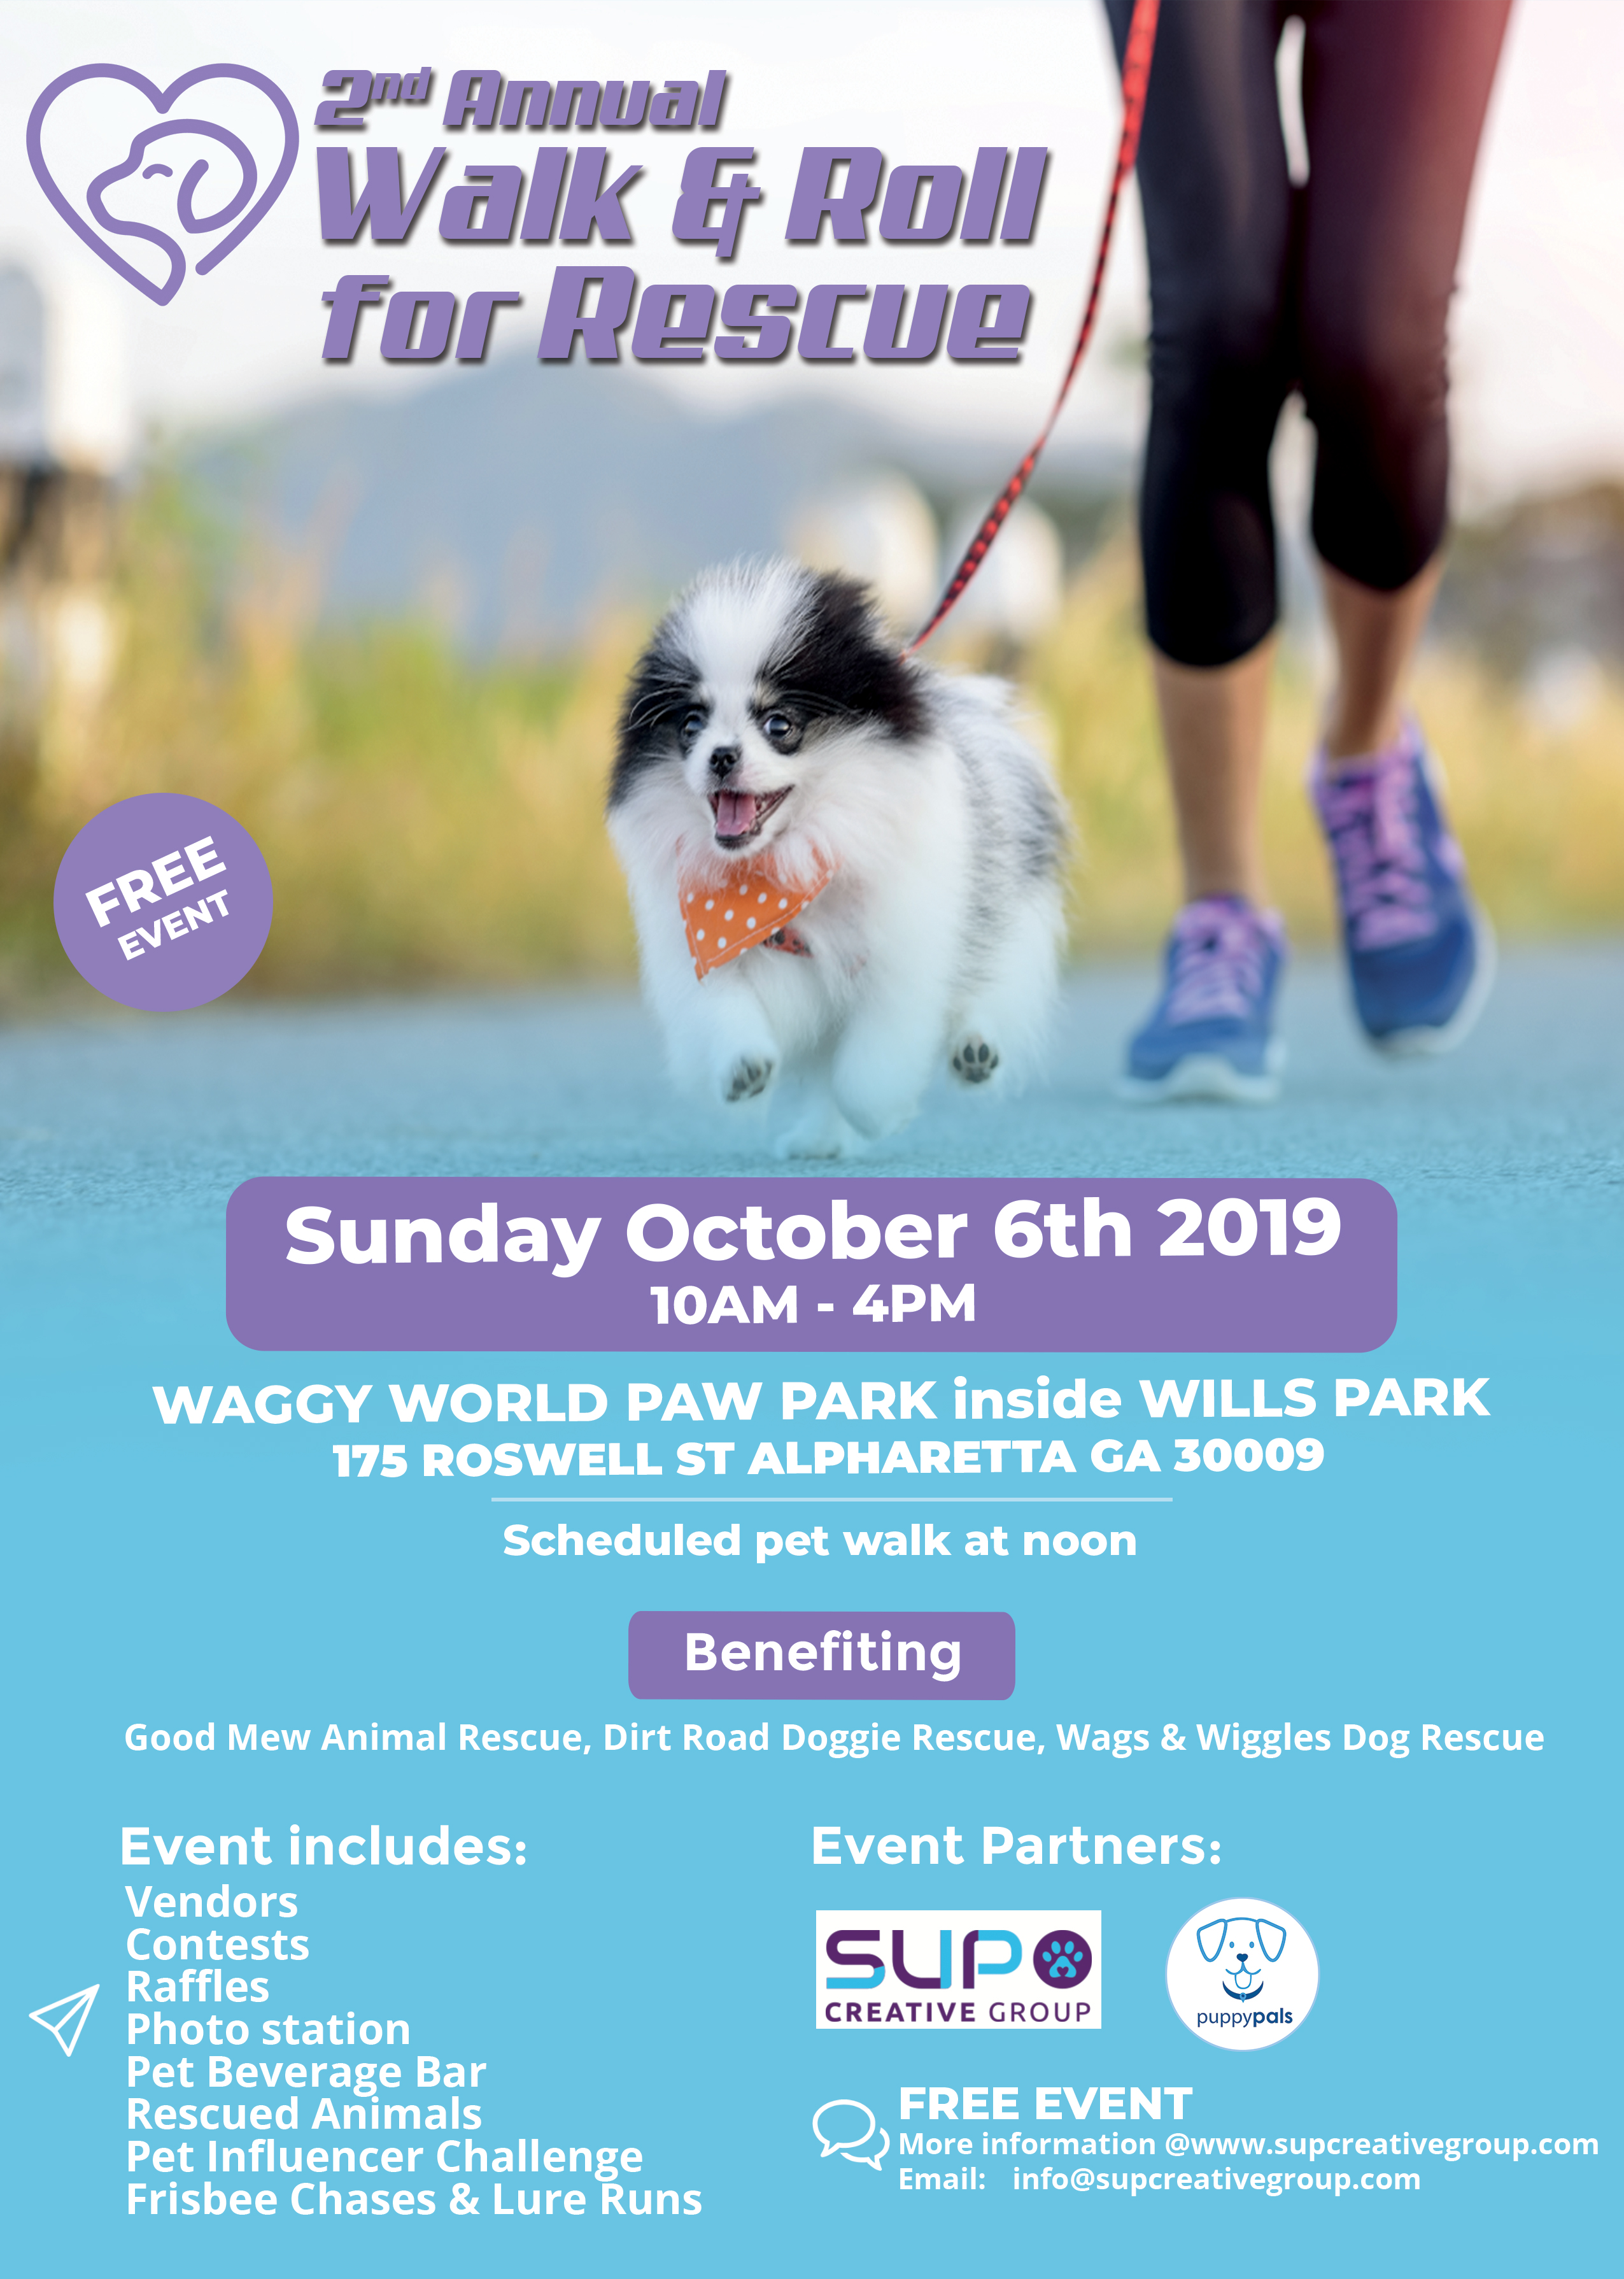 Join SUP Creative Group for 2nd Annual Walk & Roll for Rescue 2019